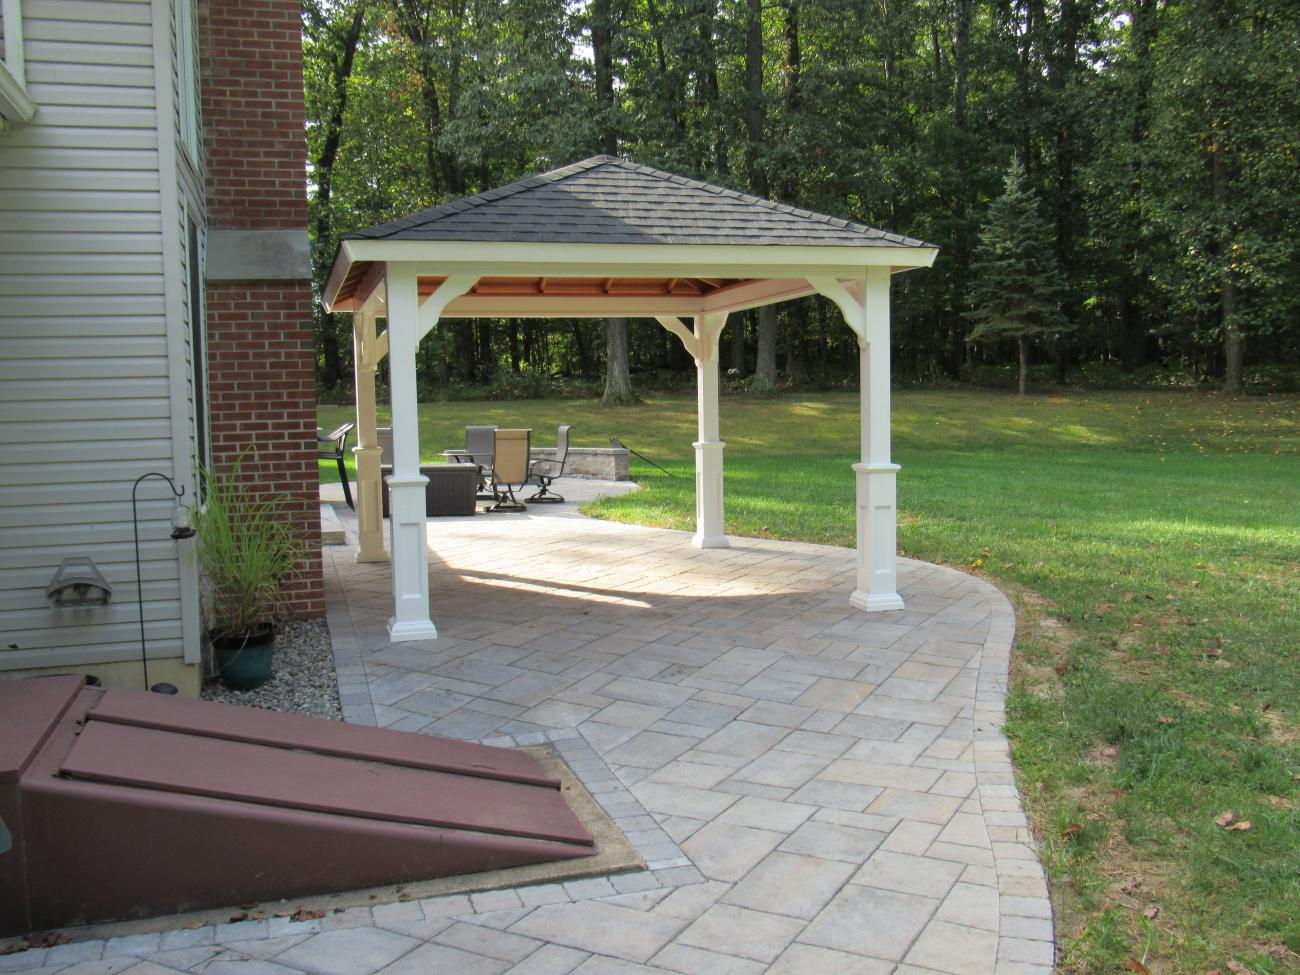 Vinyl Pavilions | Lykens Valley Gazebos and Outdoor Living Products